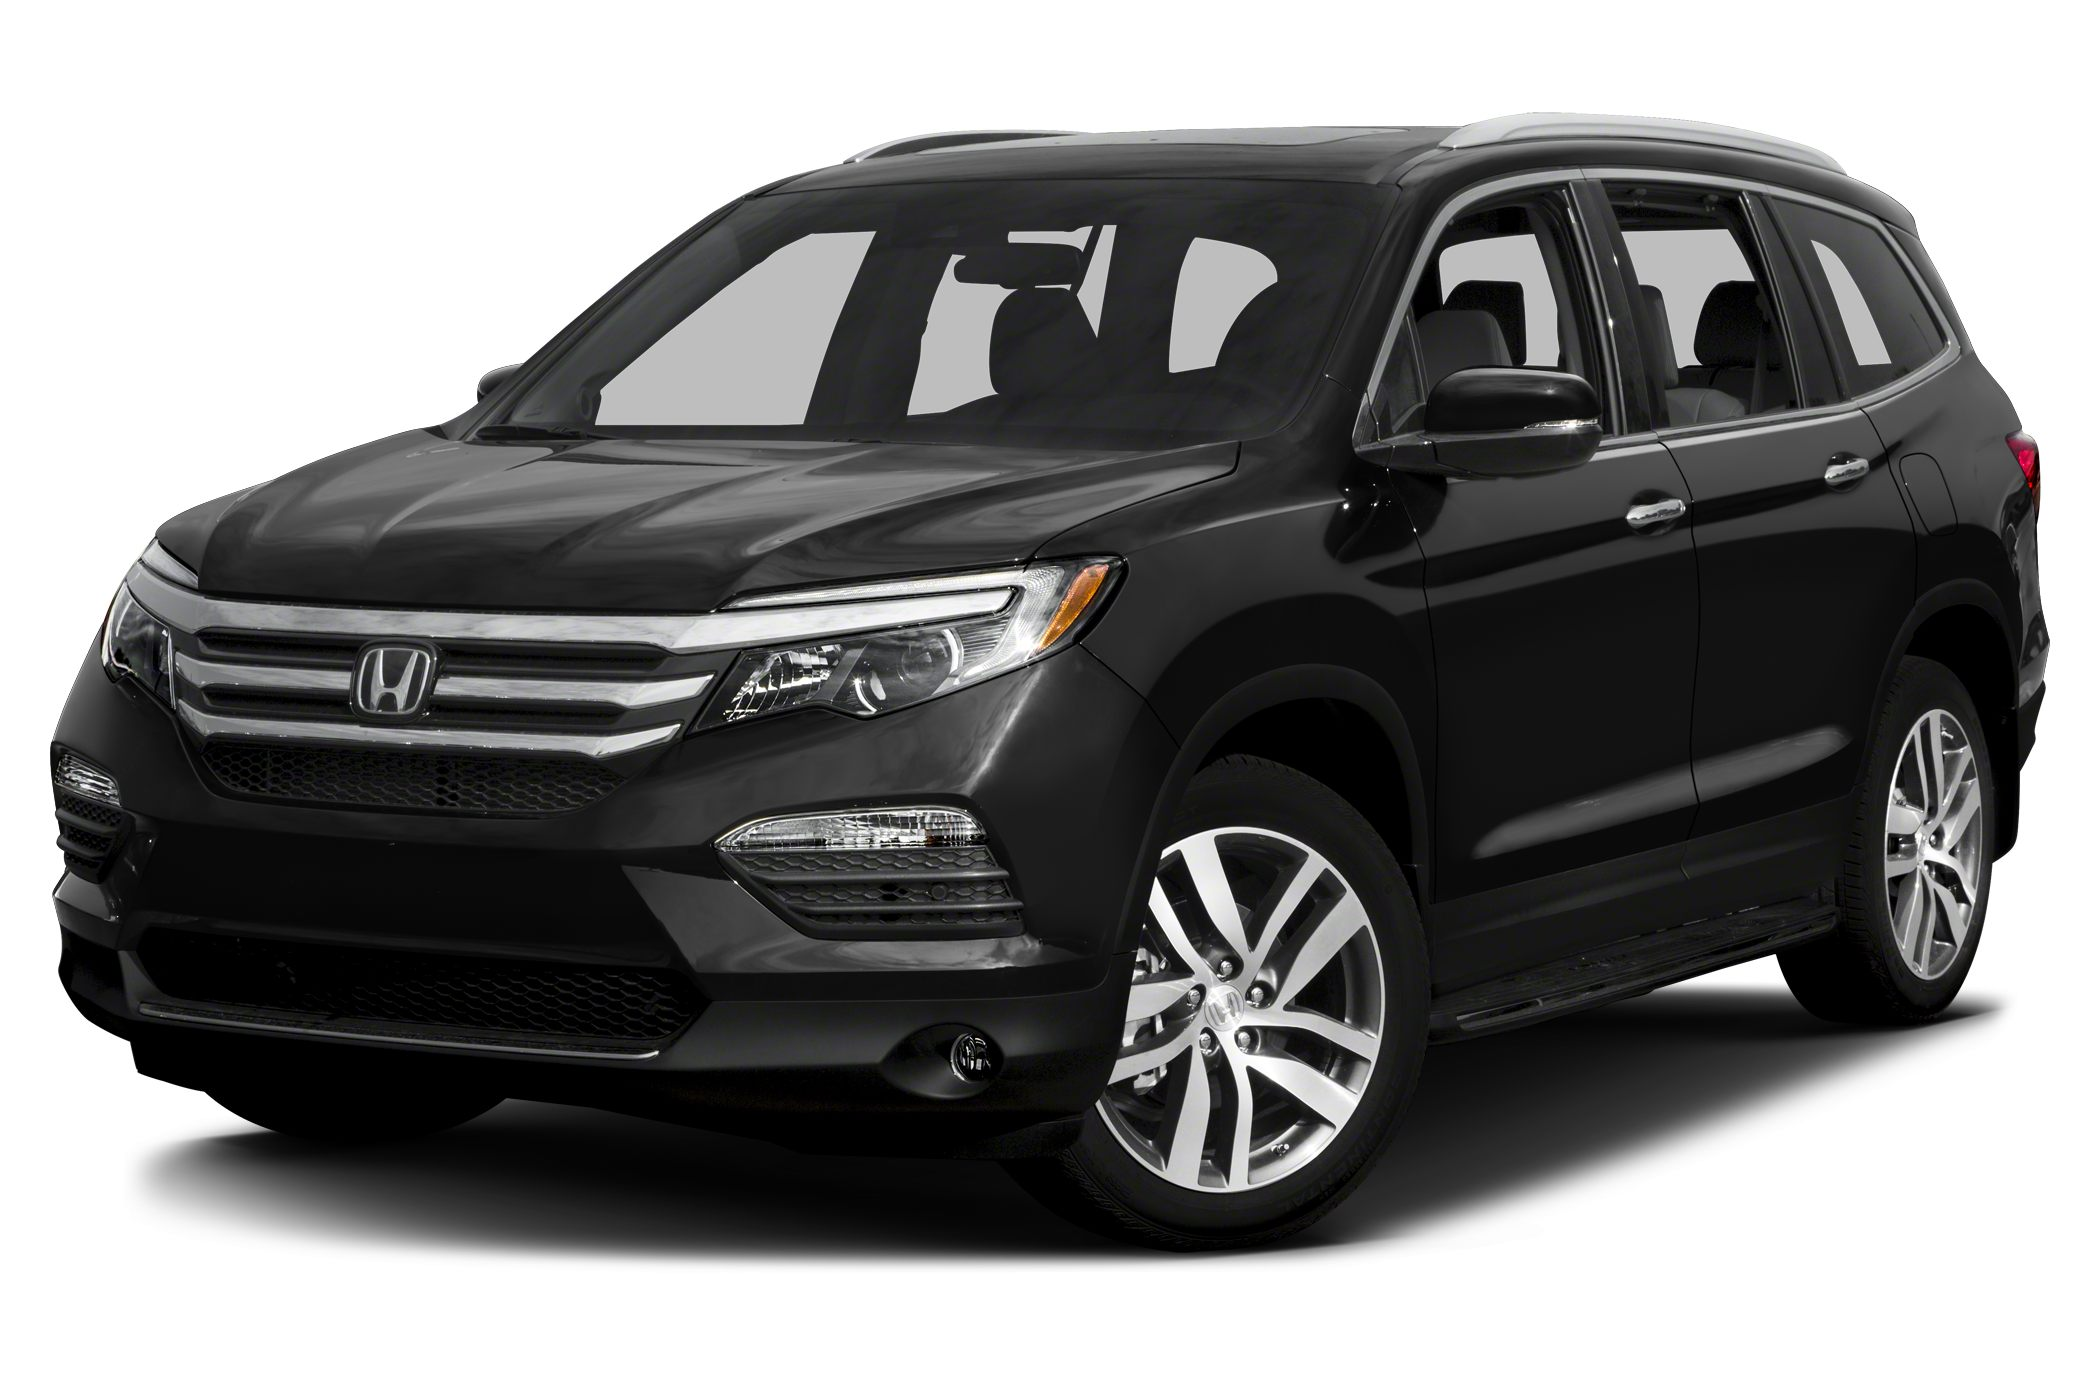 2016 Honda Pilot Touring Get a grip with amazing traction control Has sticking power Buy a new H